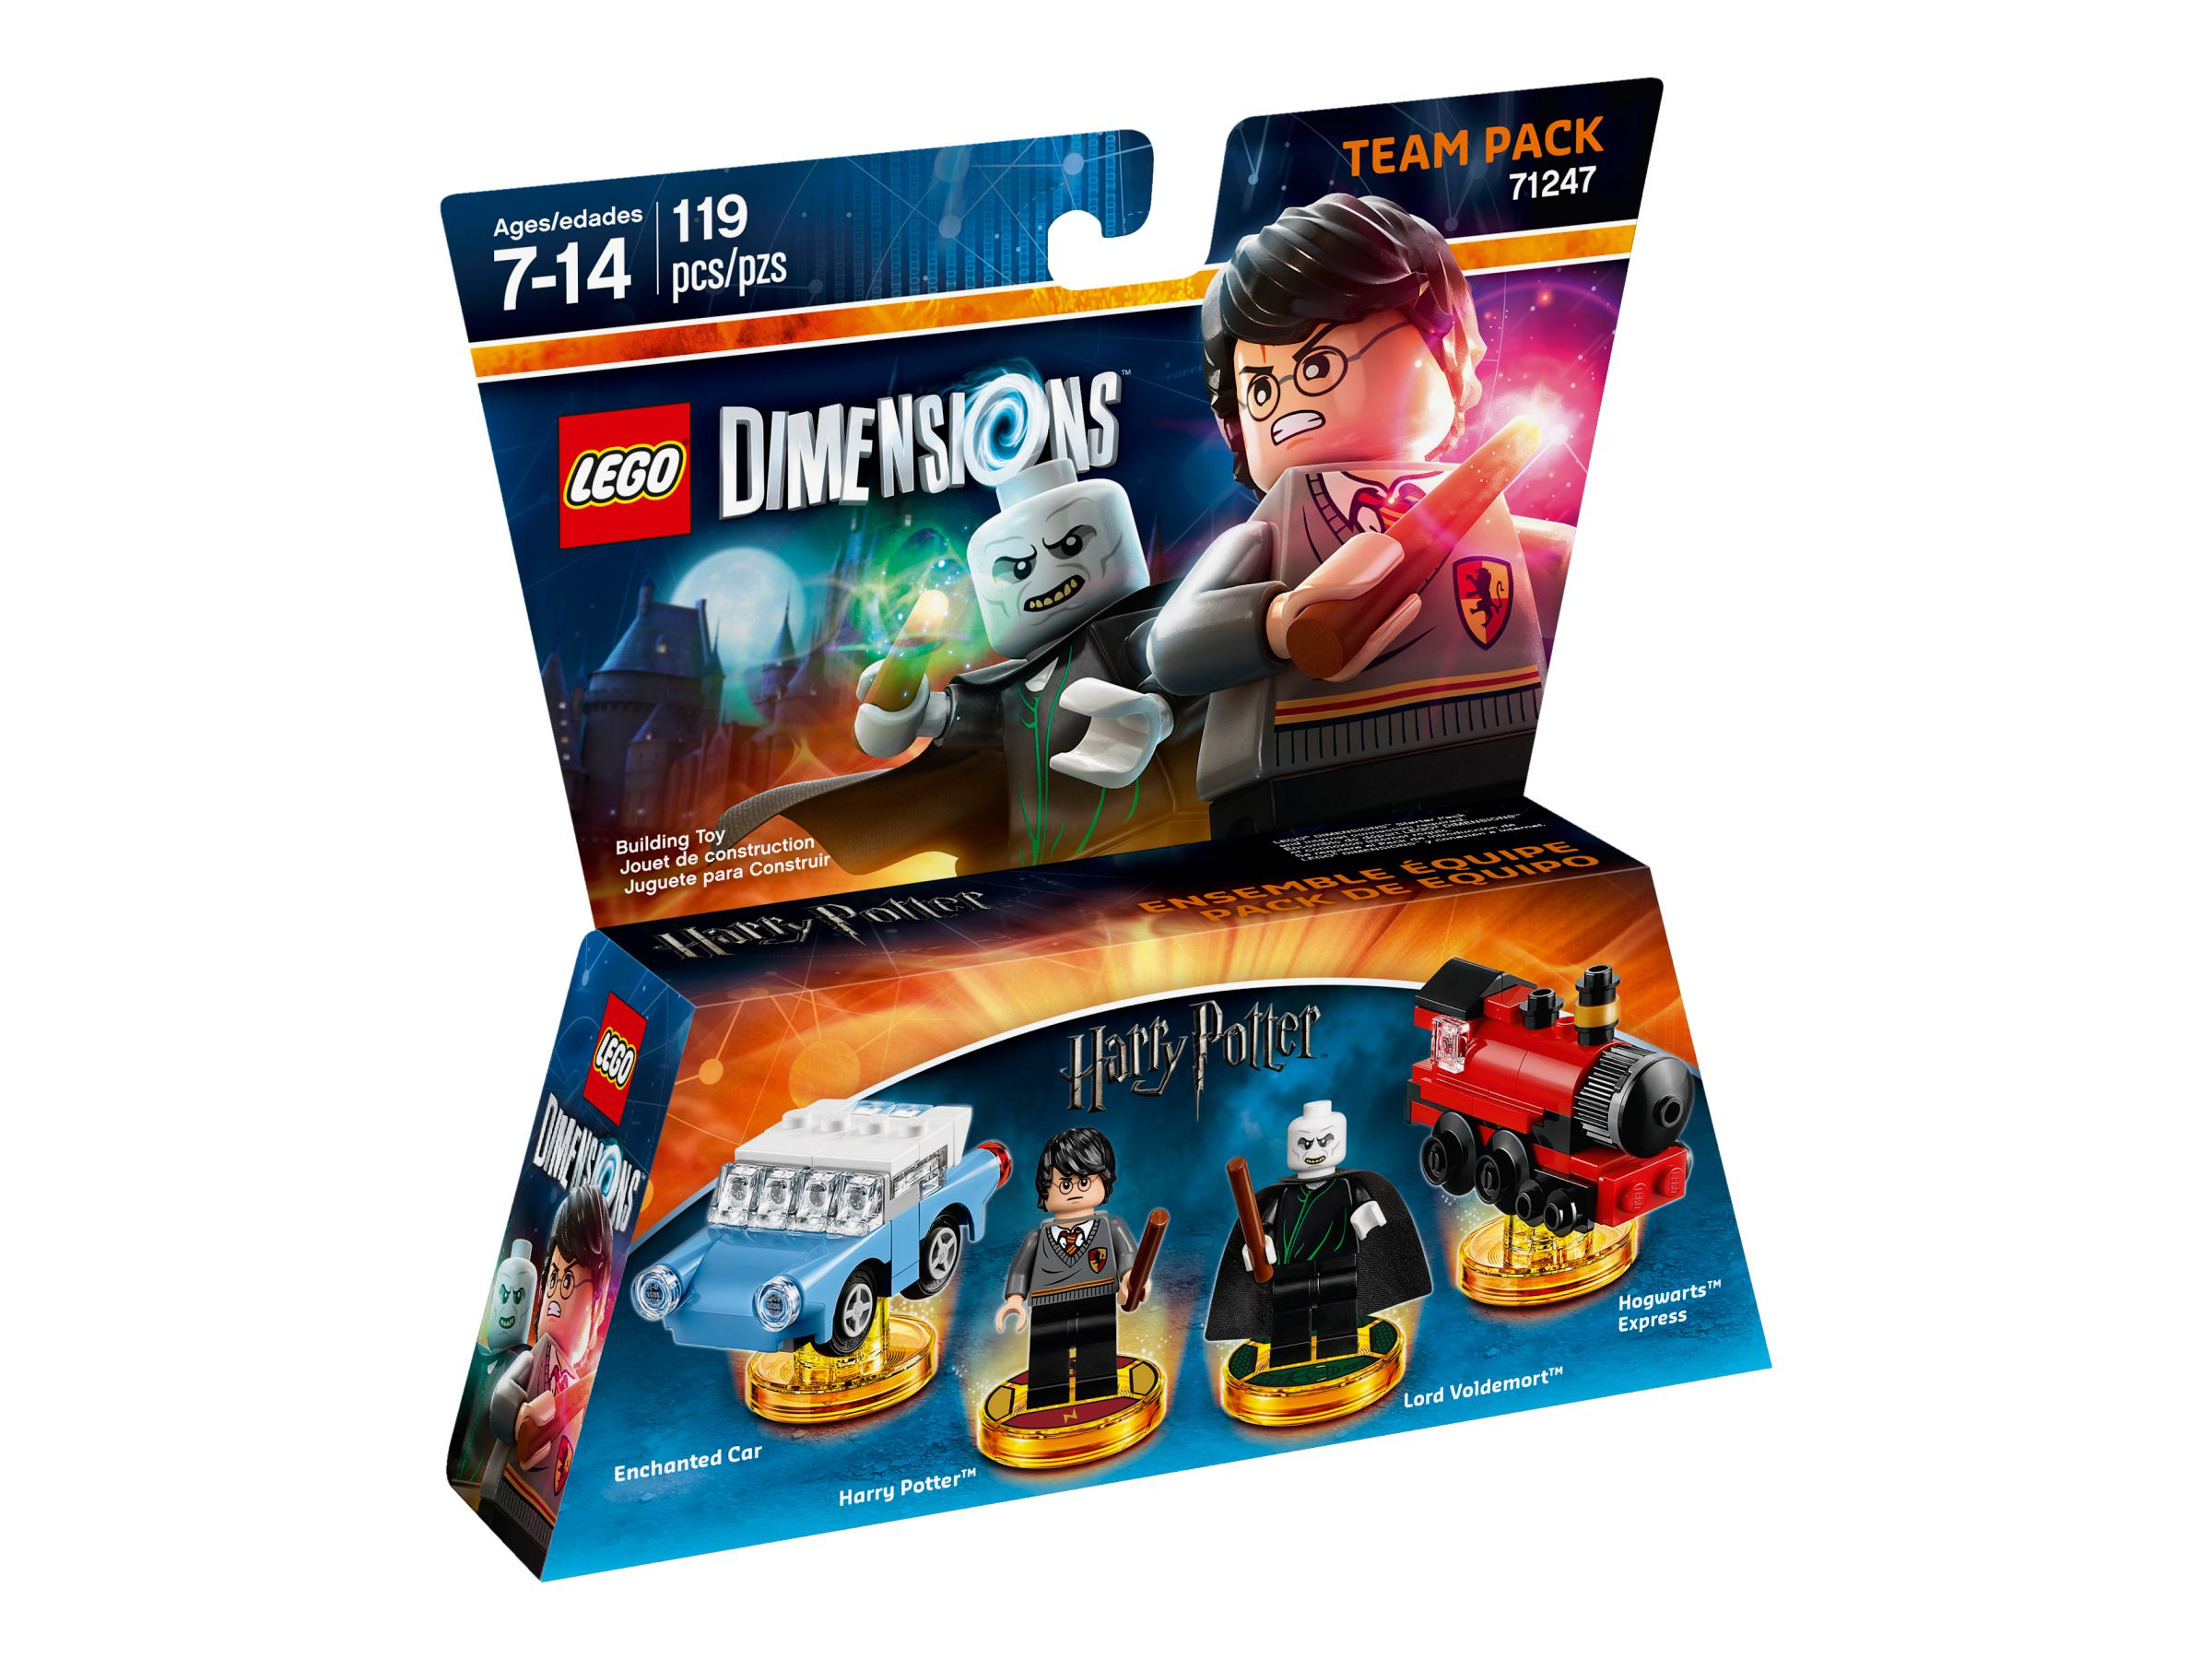 LEGO Dimensions 71247 Team Pack Harry Potter LEGO_71247_alt1.jpg